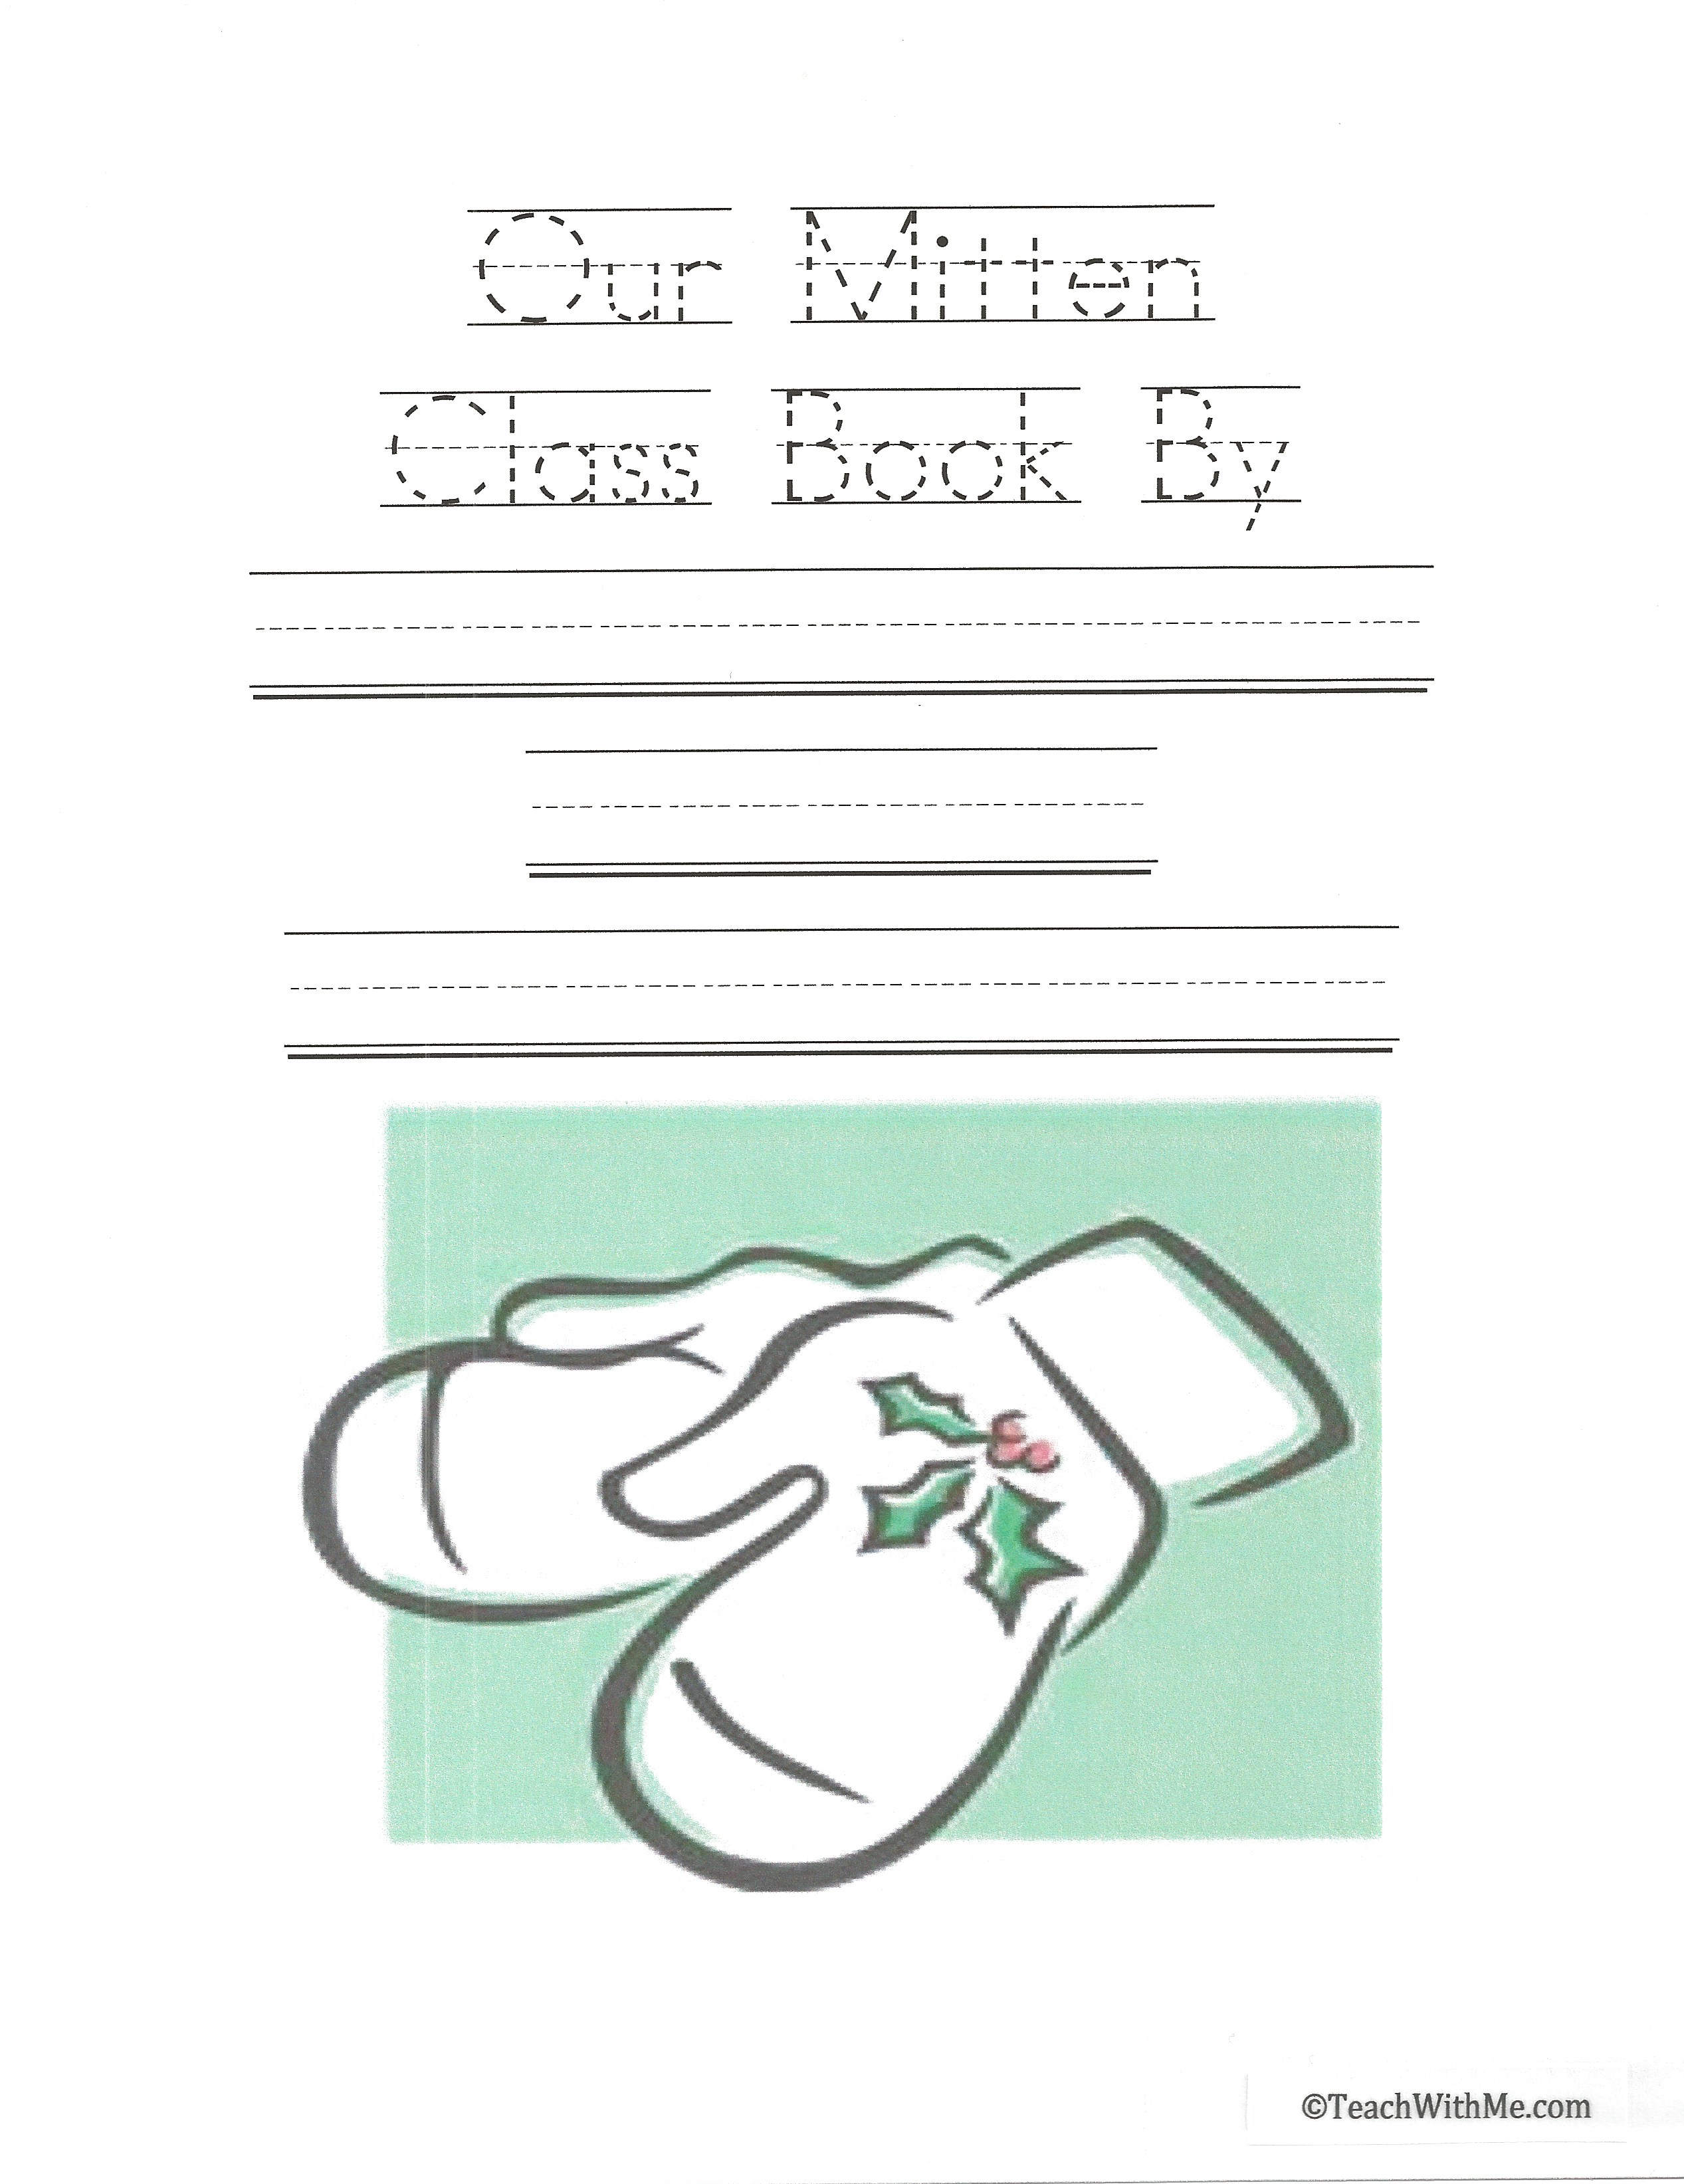 activities to go with The Mitten, Mitten activities, writing prompts for December, writing class books, gingerbread activities, mitten writing prompts, gingerbread writing prompts, activities to go with The Gingerbread Man story,